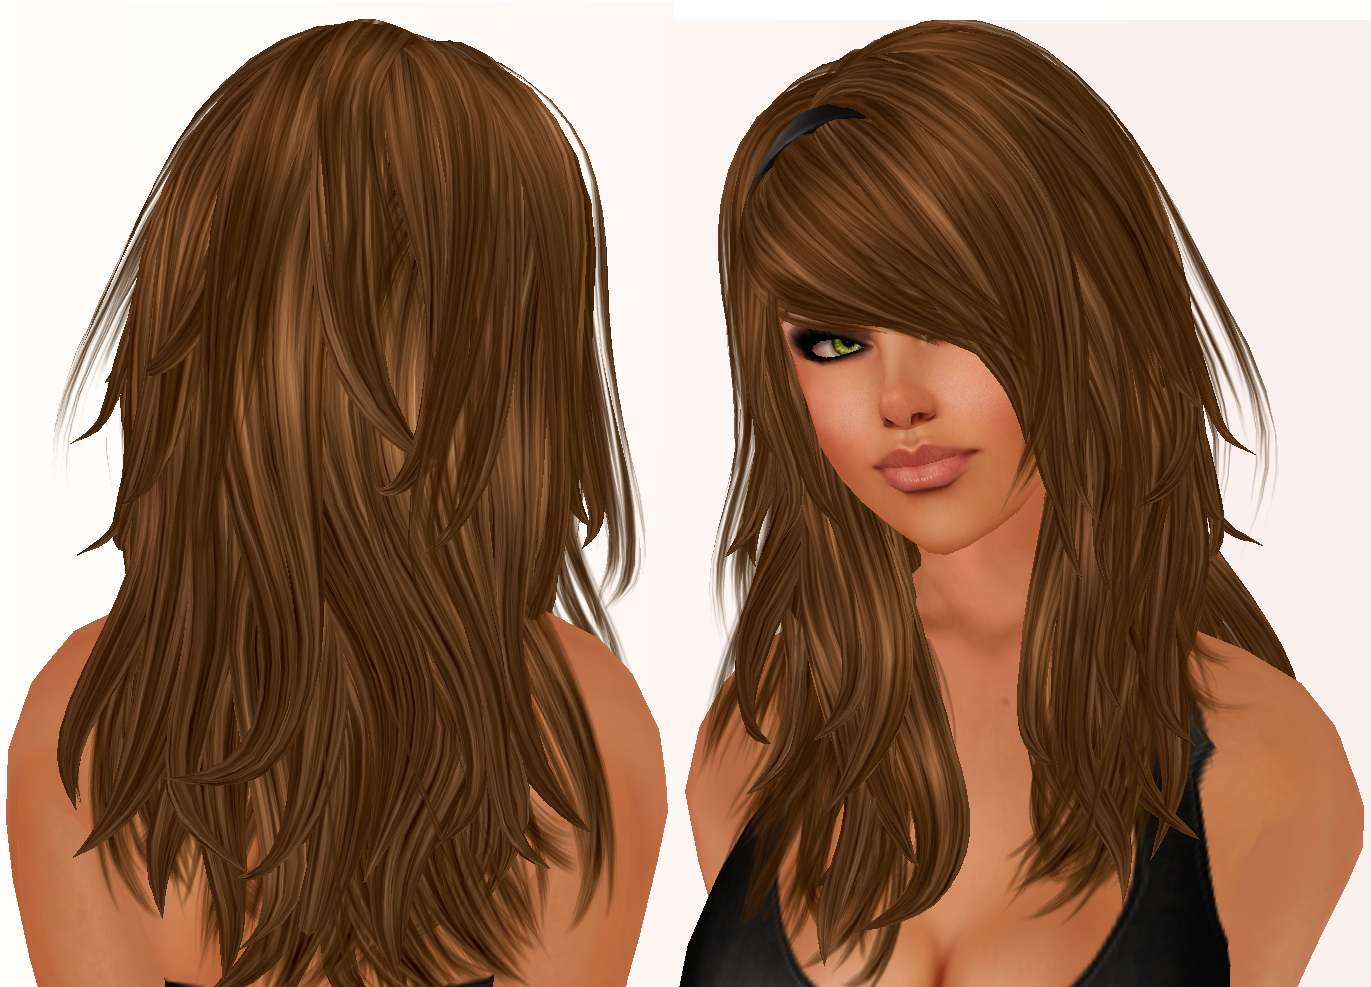 Hairstyles For Long Hair With Layers And Bangs